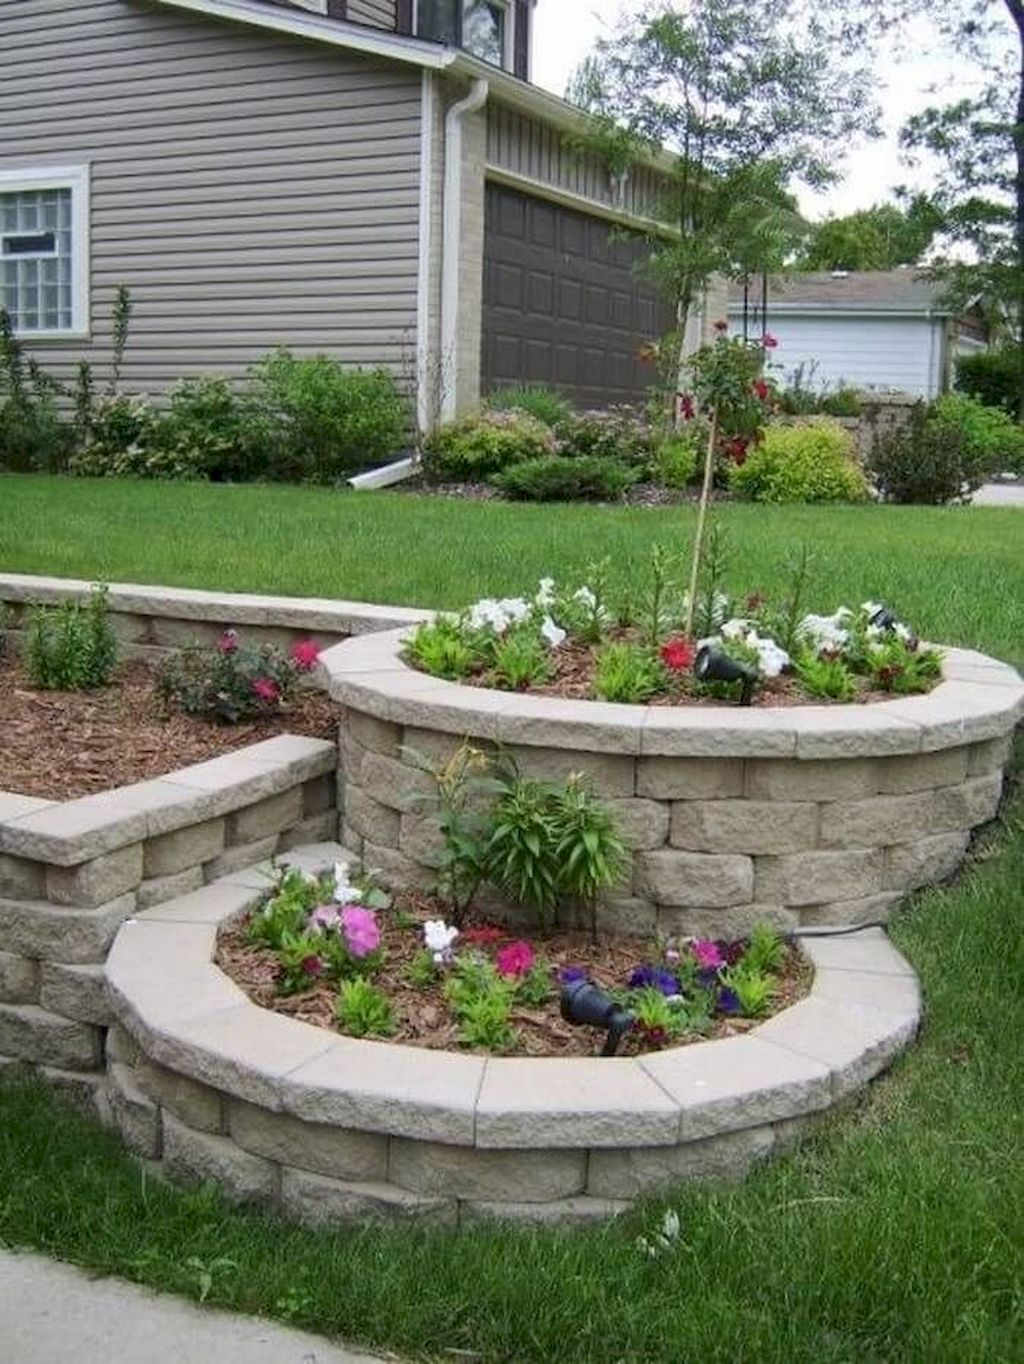 32 Creative Home Front Landscape Design Ideas: Beautiful Small Front Yard Landscaping Ideas (32)